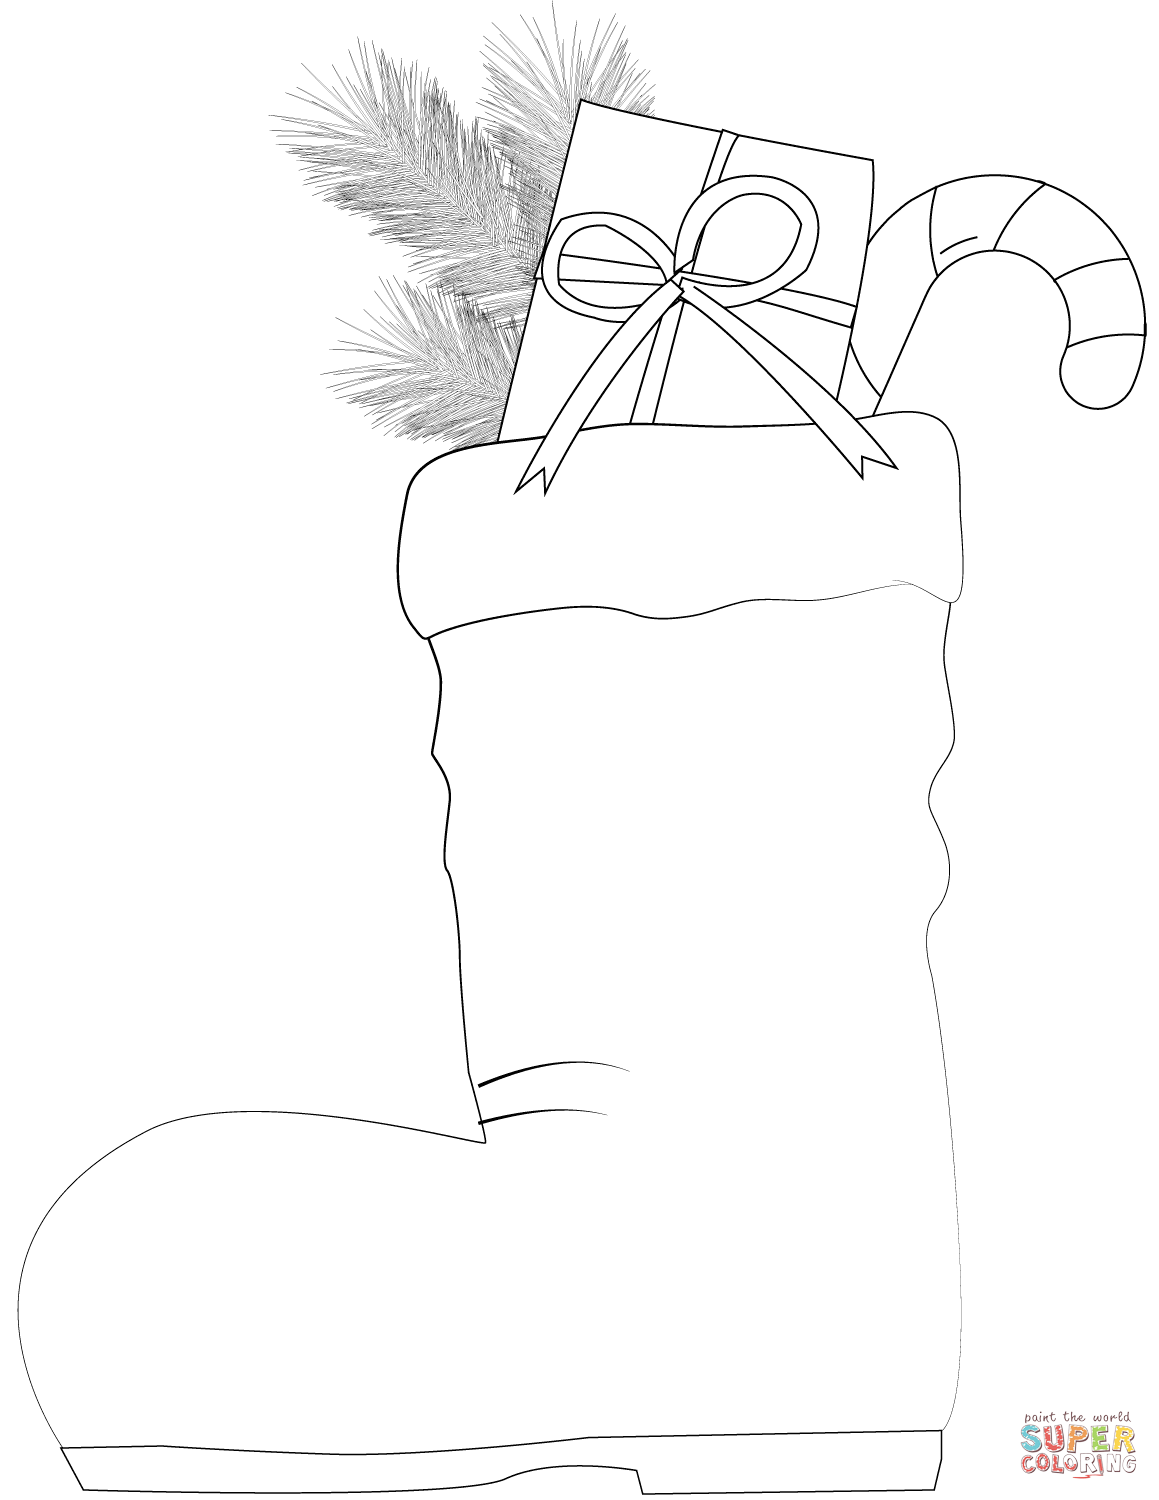 Santa Claus Boots Coloring Pages With Sweets Page Free Printable